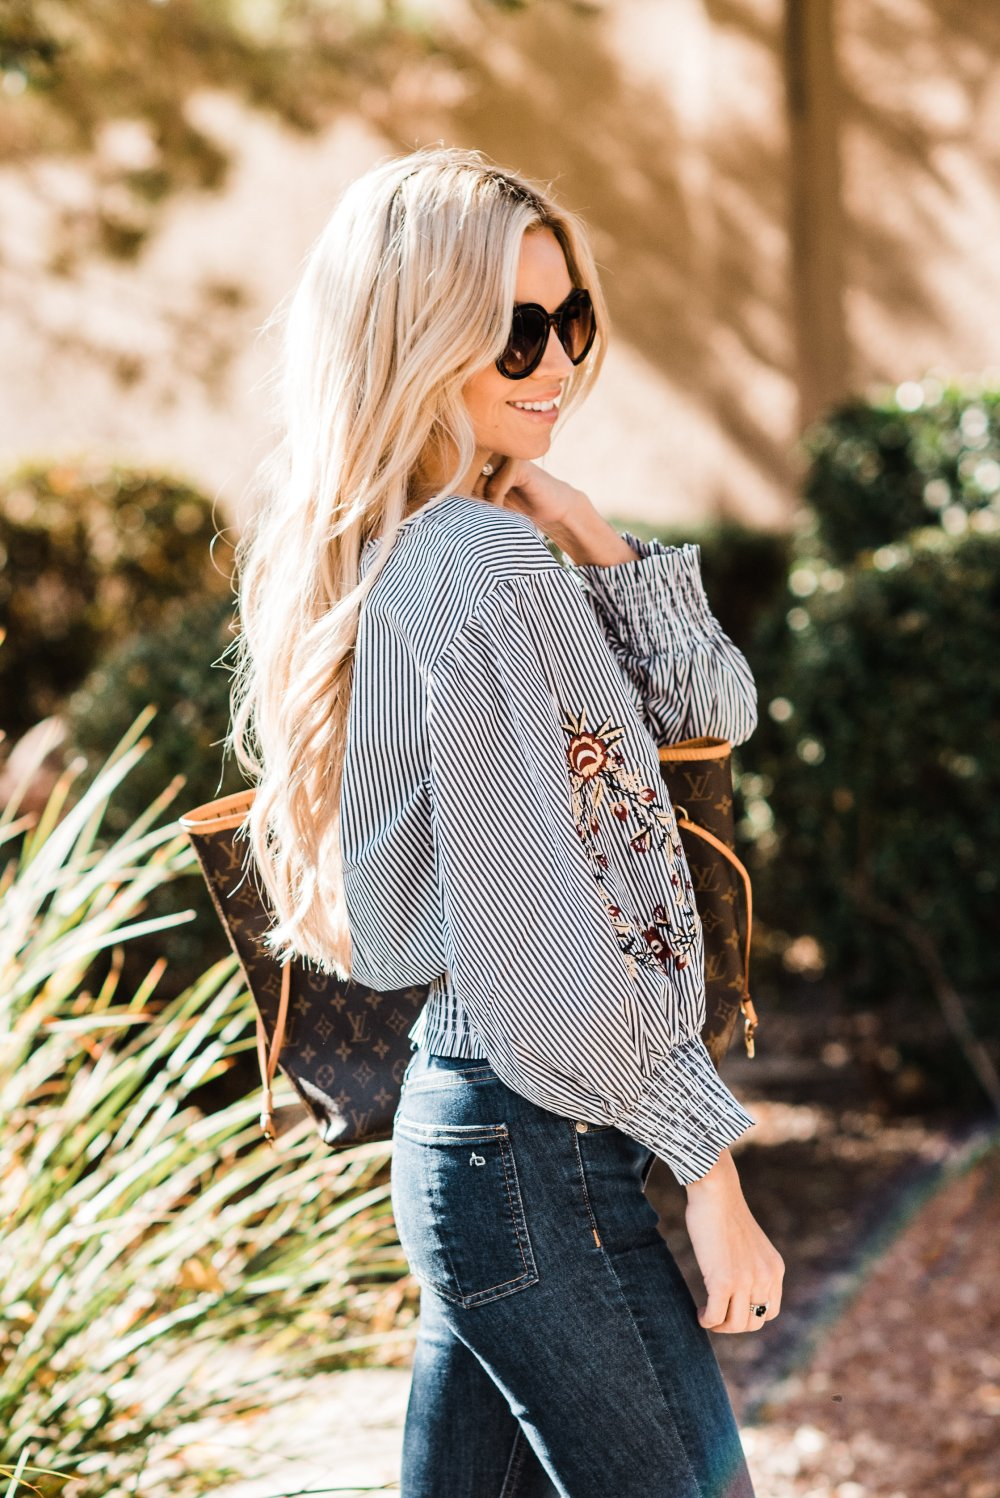 Loving this pin-stripe, embroidered top to transition into spring fashion! These platform shoes are very in style right now and they are so comfortable. I can't wait for spring and to start diving into the new women's fashion trends! I can see wearing this top in various ways! I love it when a piece can do that! #trulydestiny #womensfashion #springfashion #embroidered